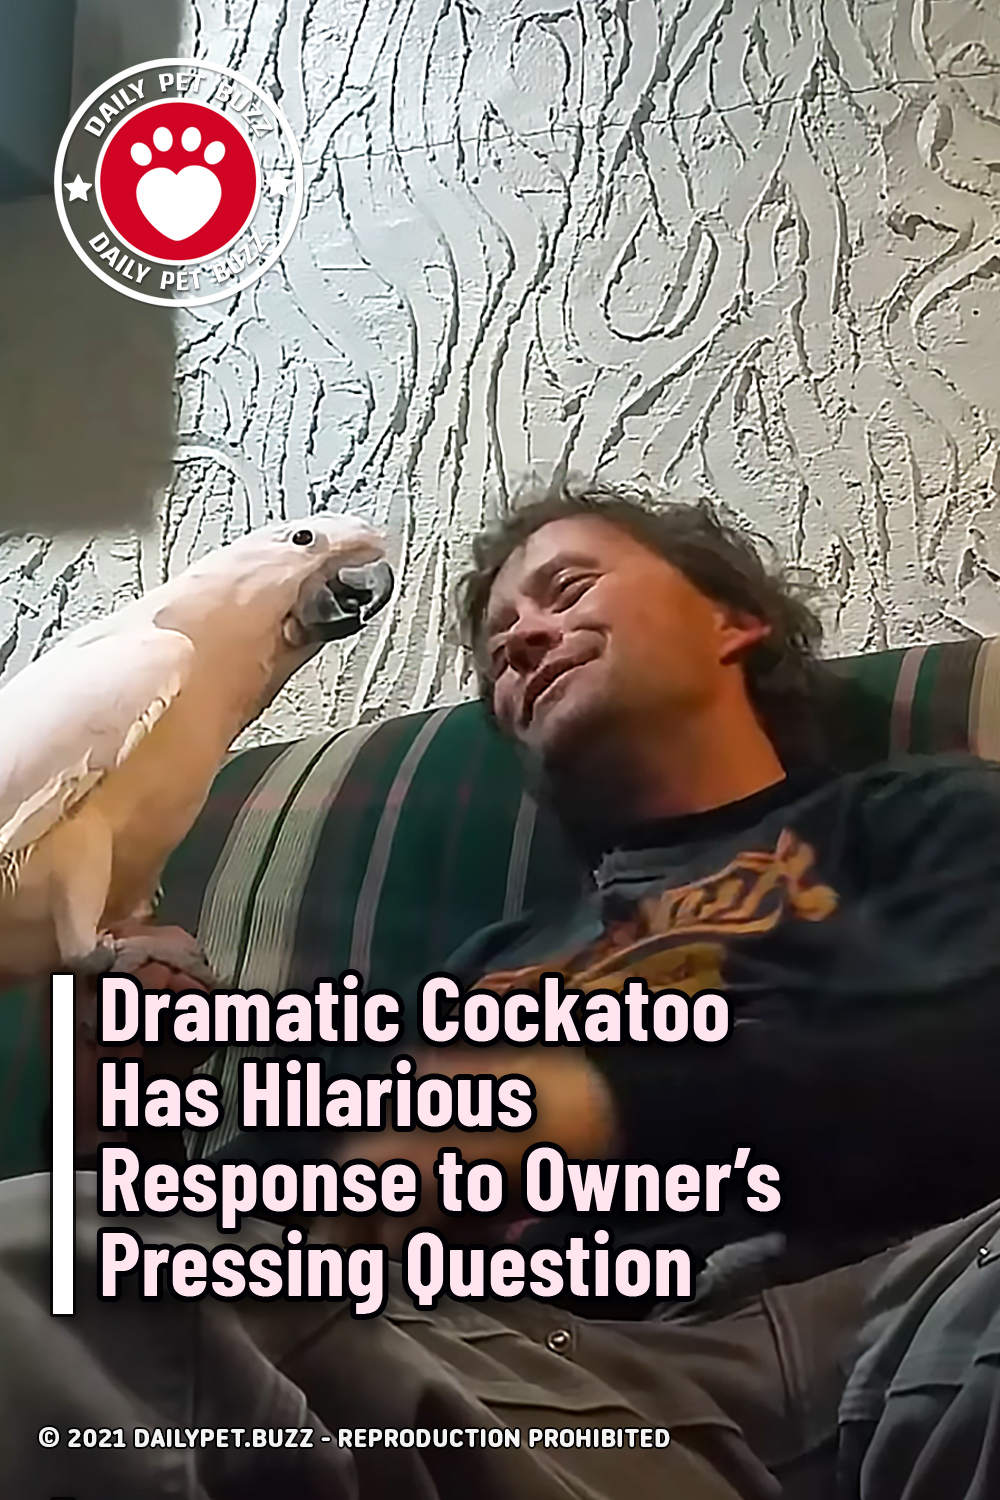 Dramatic Cockatoo Has Hilarious Response to Owner's Pressing Question